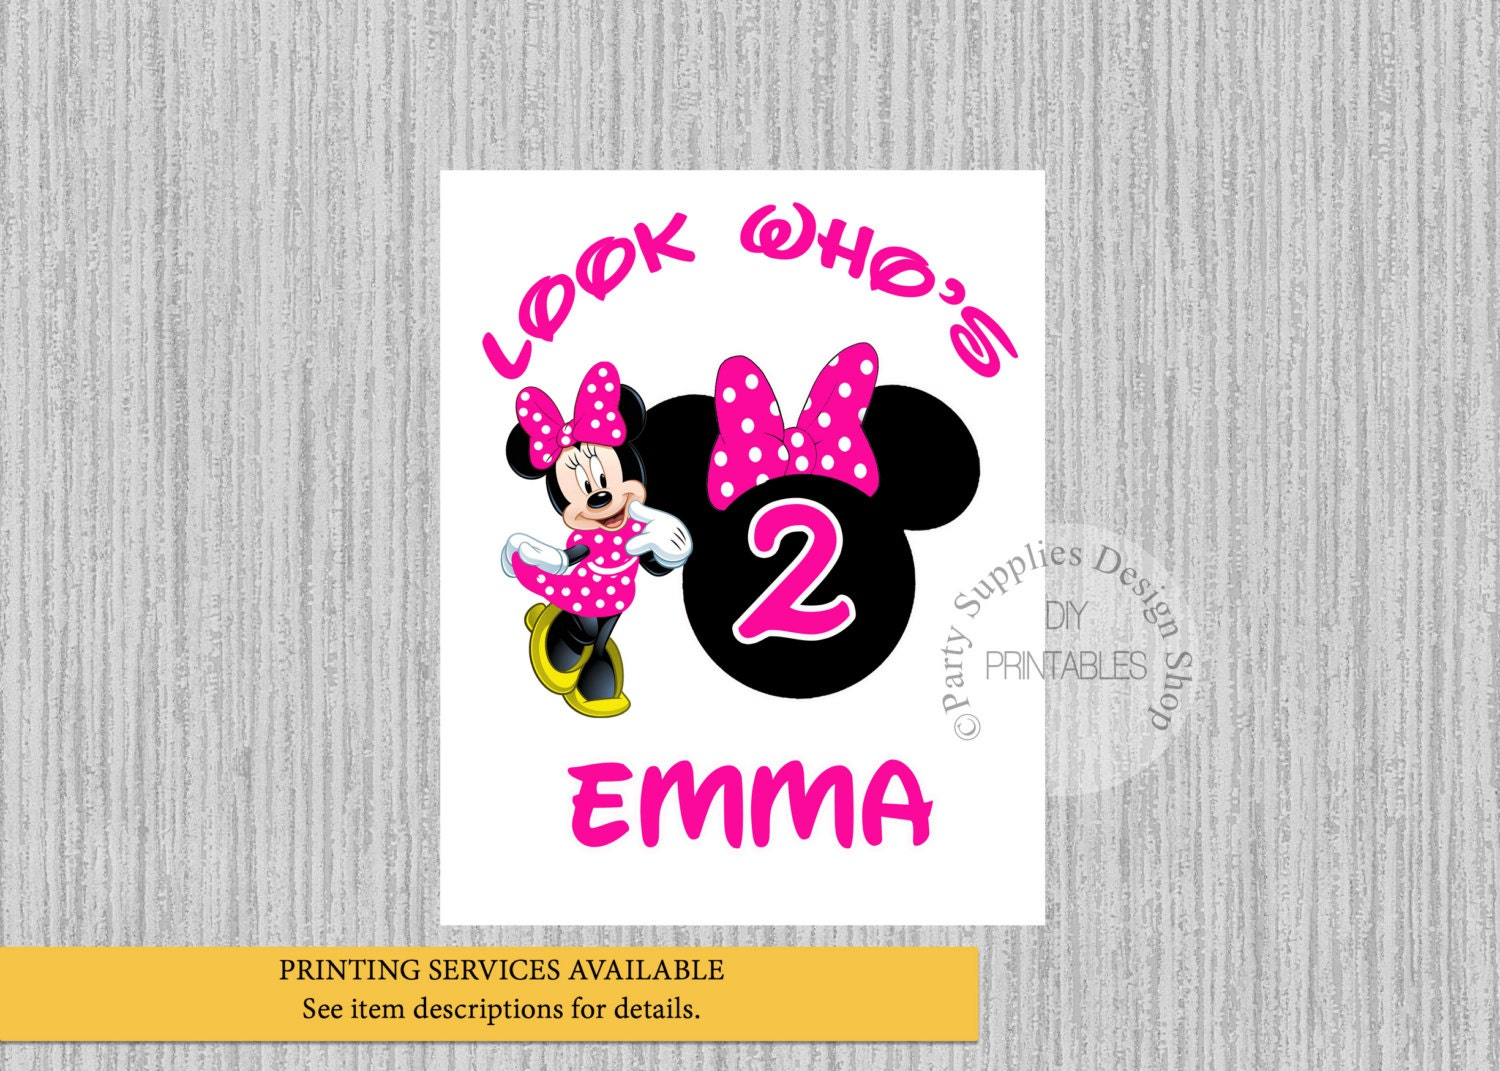 Design your own t-shirt hot pink - Disney Minnie Mouse Birthday Iron On Hot Pink Minnie Birthday Tshirt Printable Minnie Personalized Iron On Diy Printables Digital Image